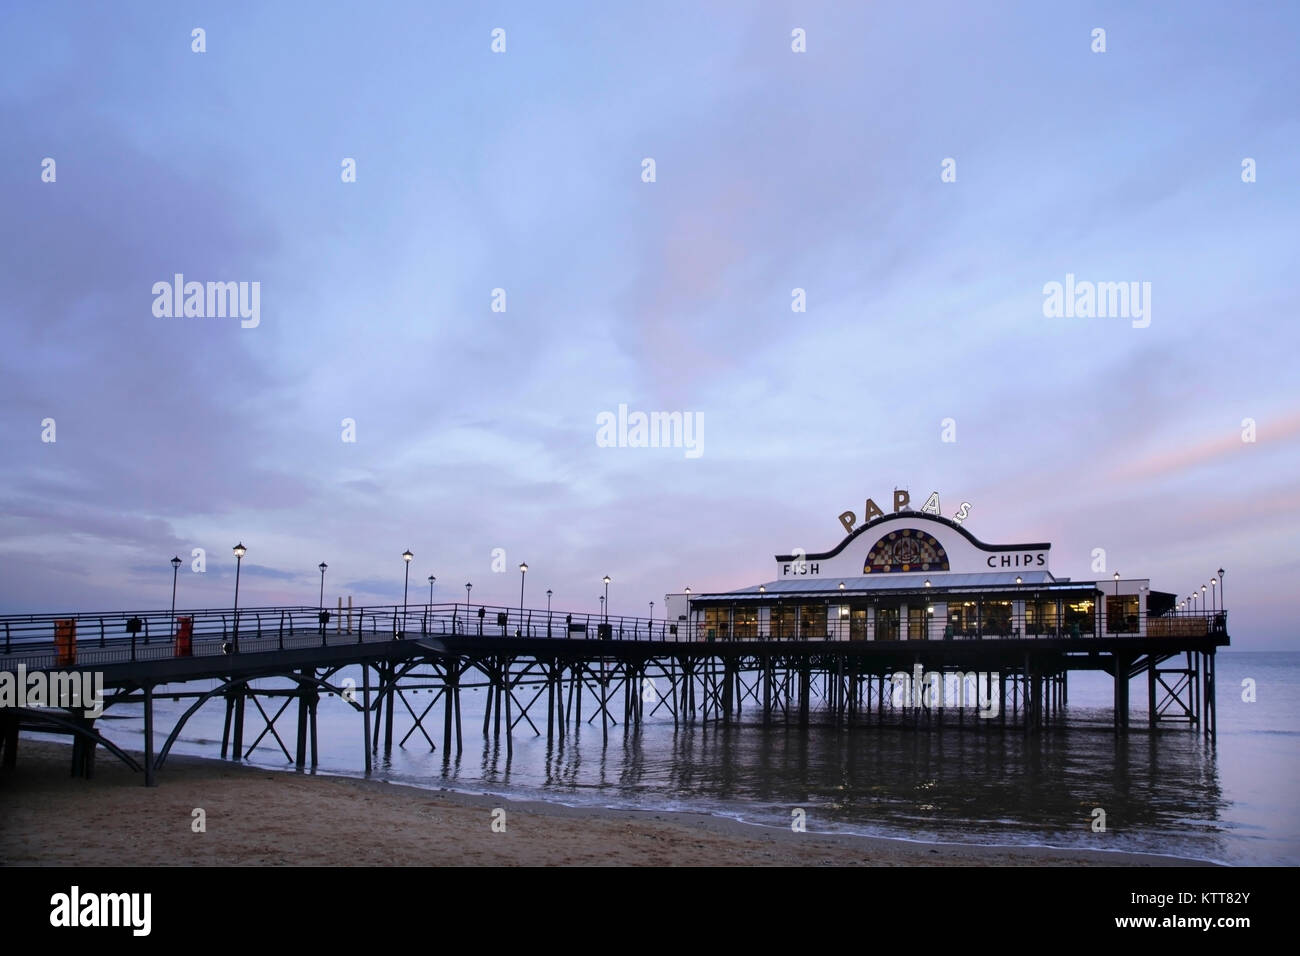 Cleethorpes Pier at twilight, UK. - Stock Image